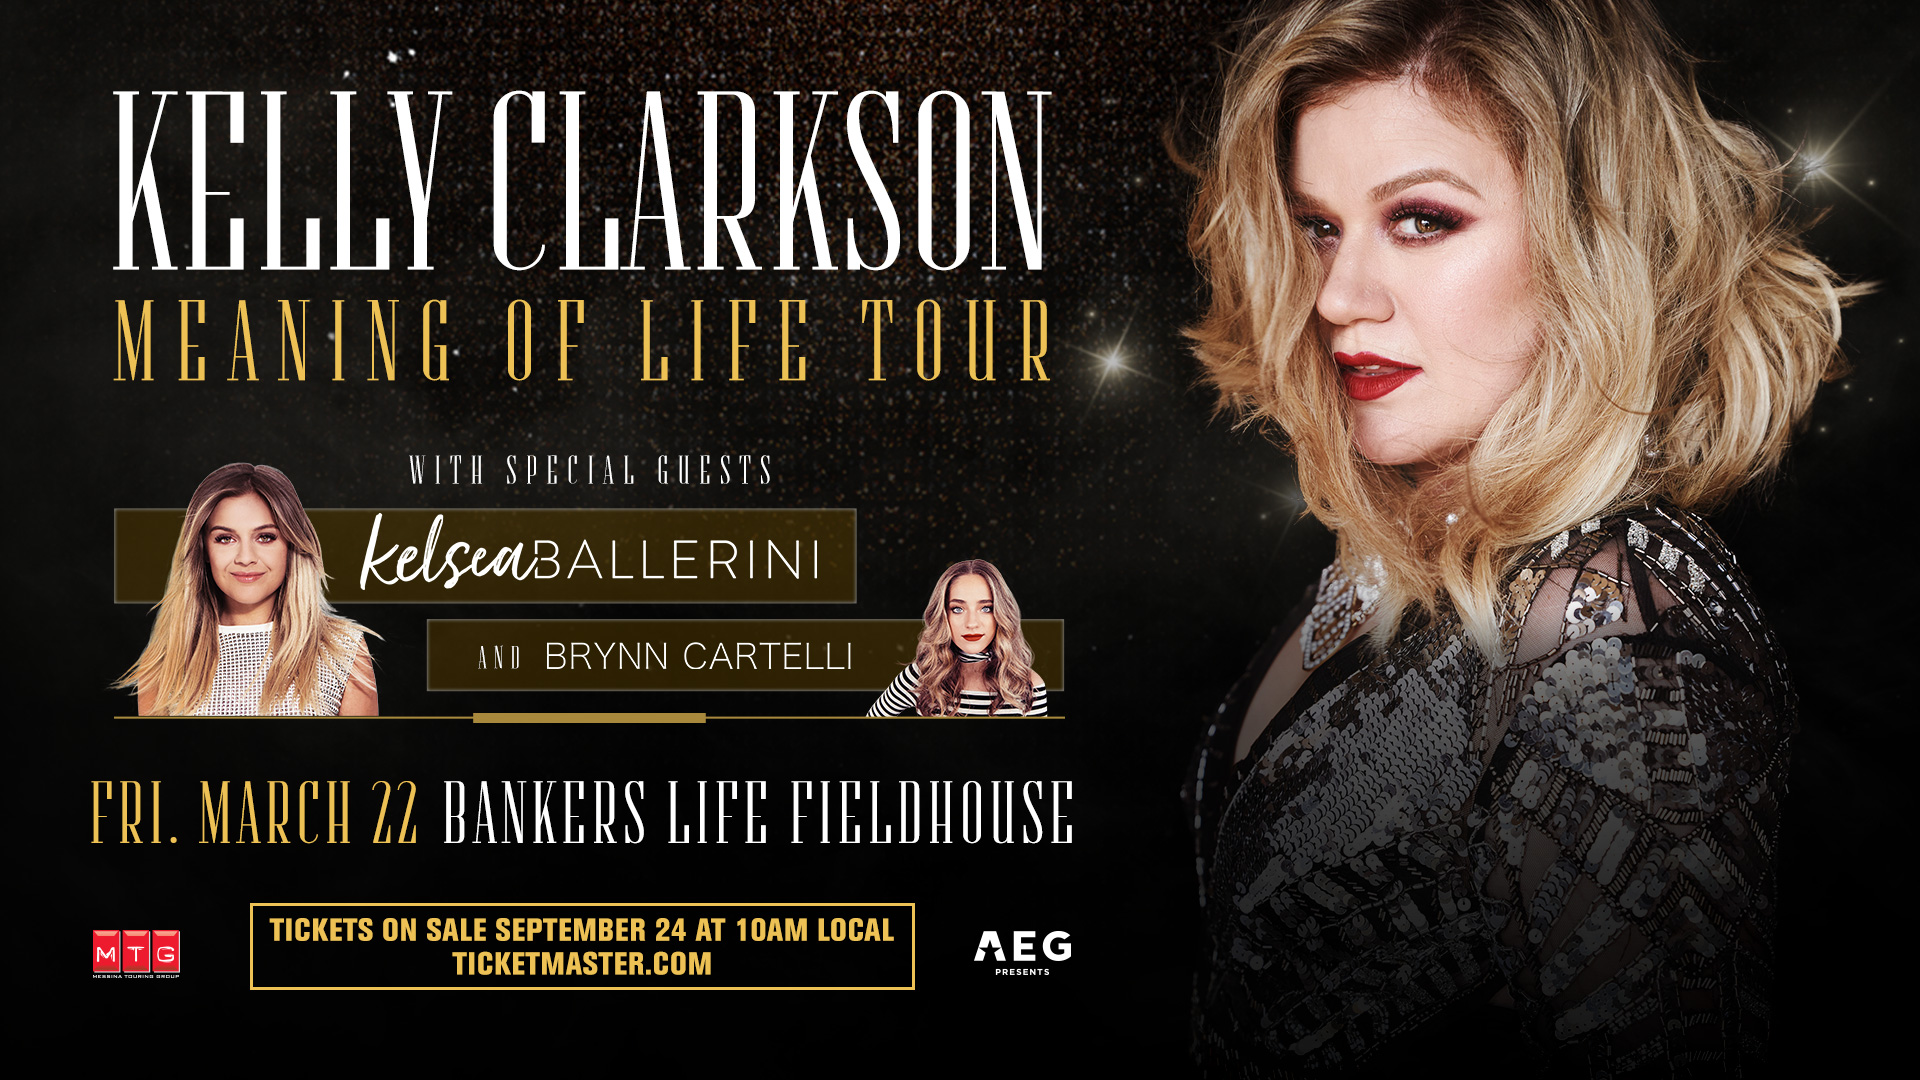 Kelly Clarkson: Meaning of Life Tour Graphics